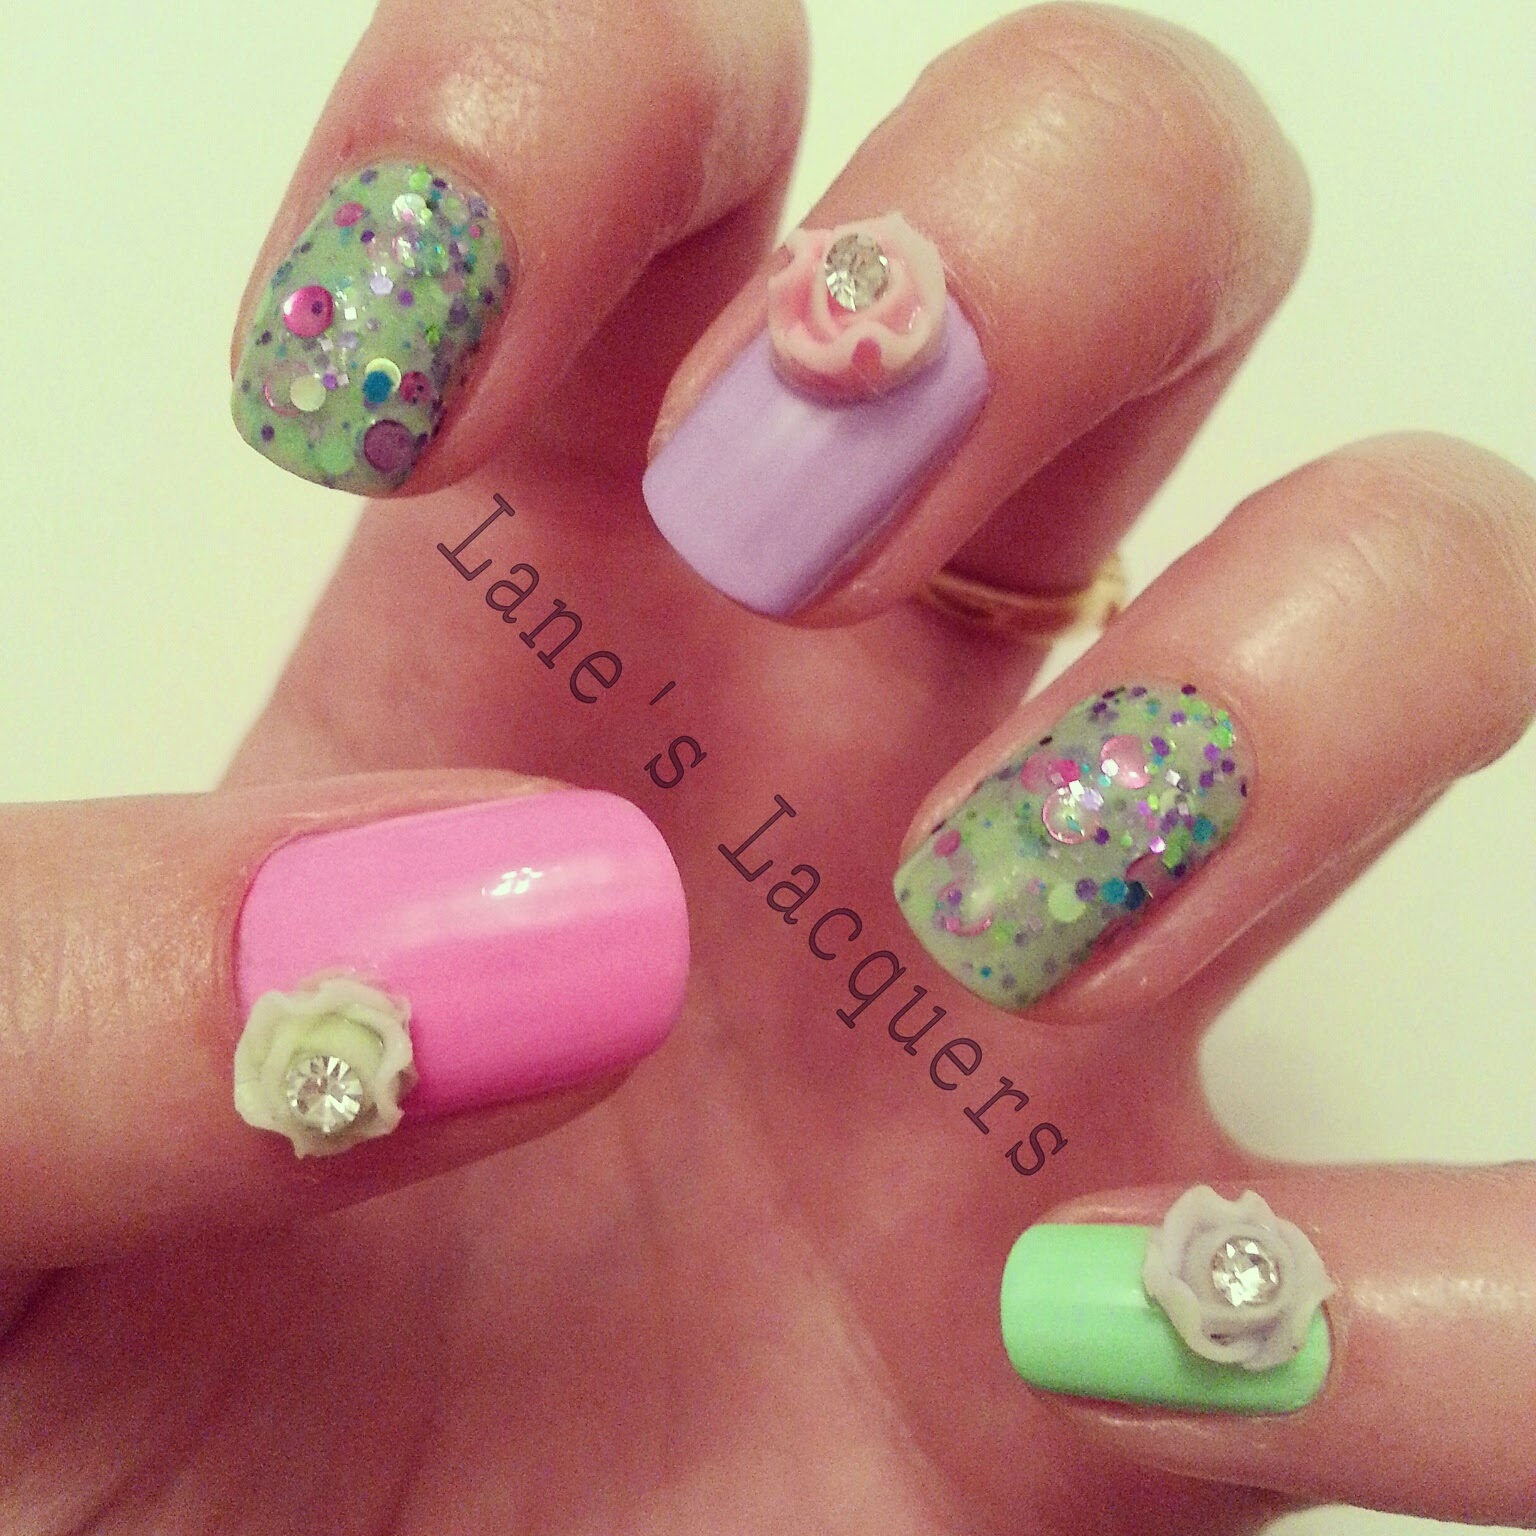 tri-polish-challenge-jindie-nails-princess-breath-3d-flowers-nail-art